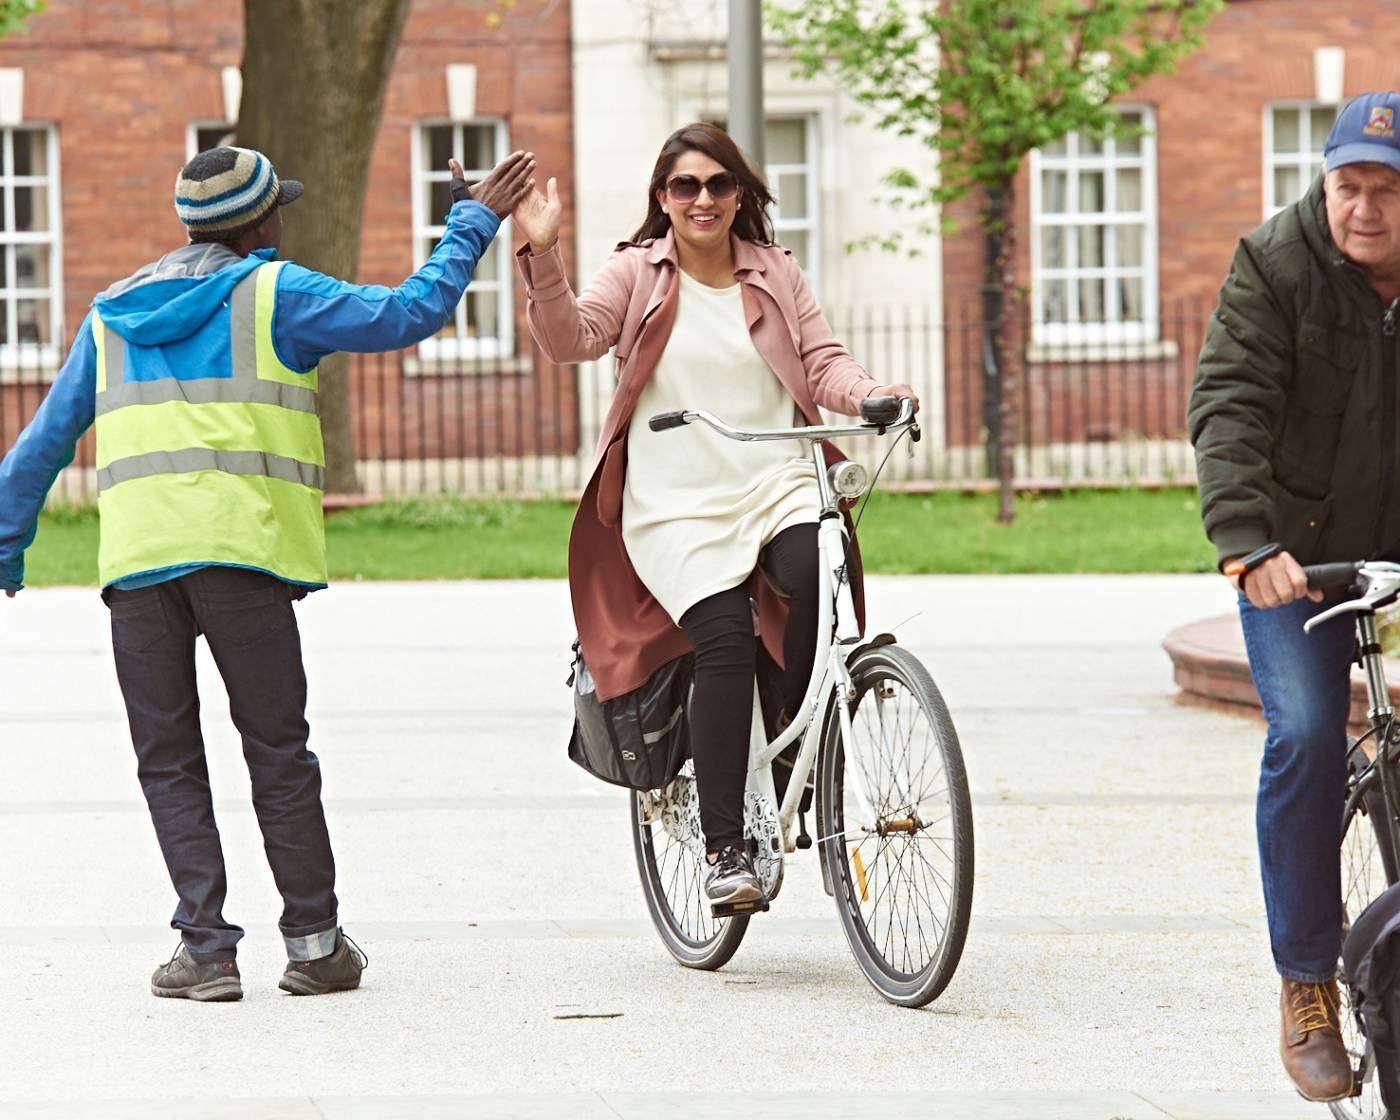 Cycling courses - people having fun getting back on a bike